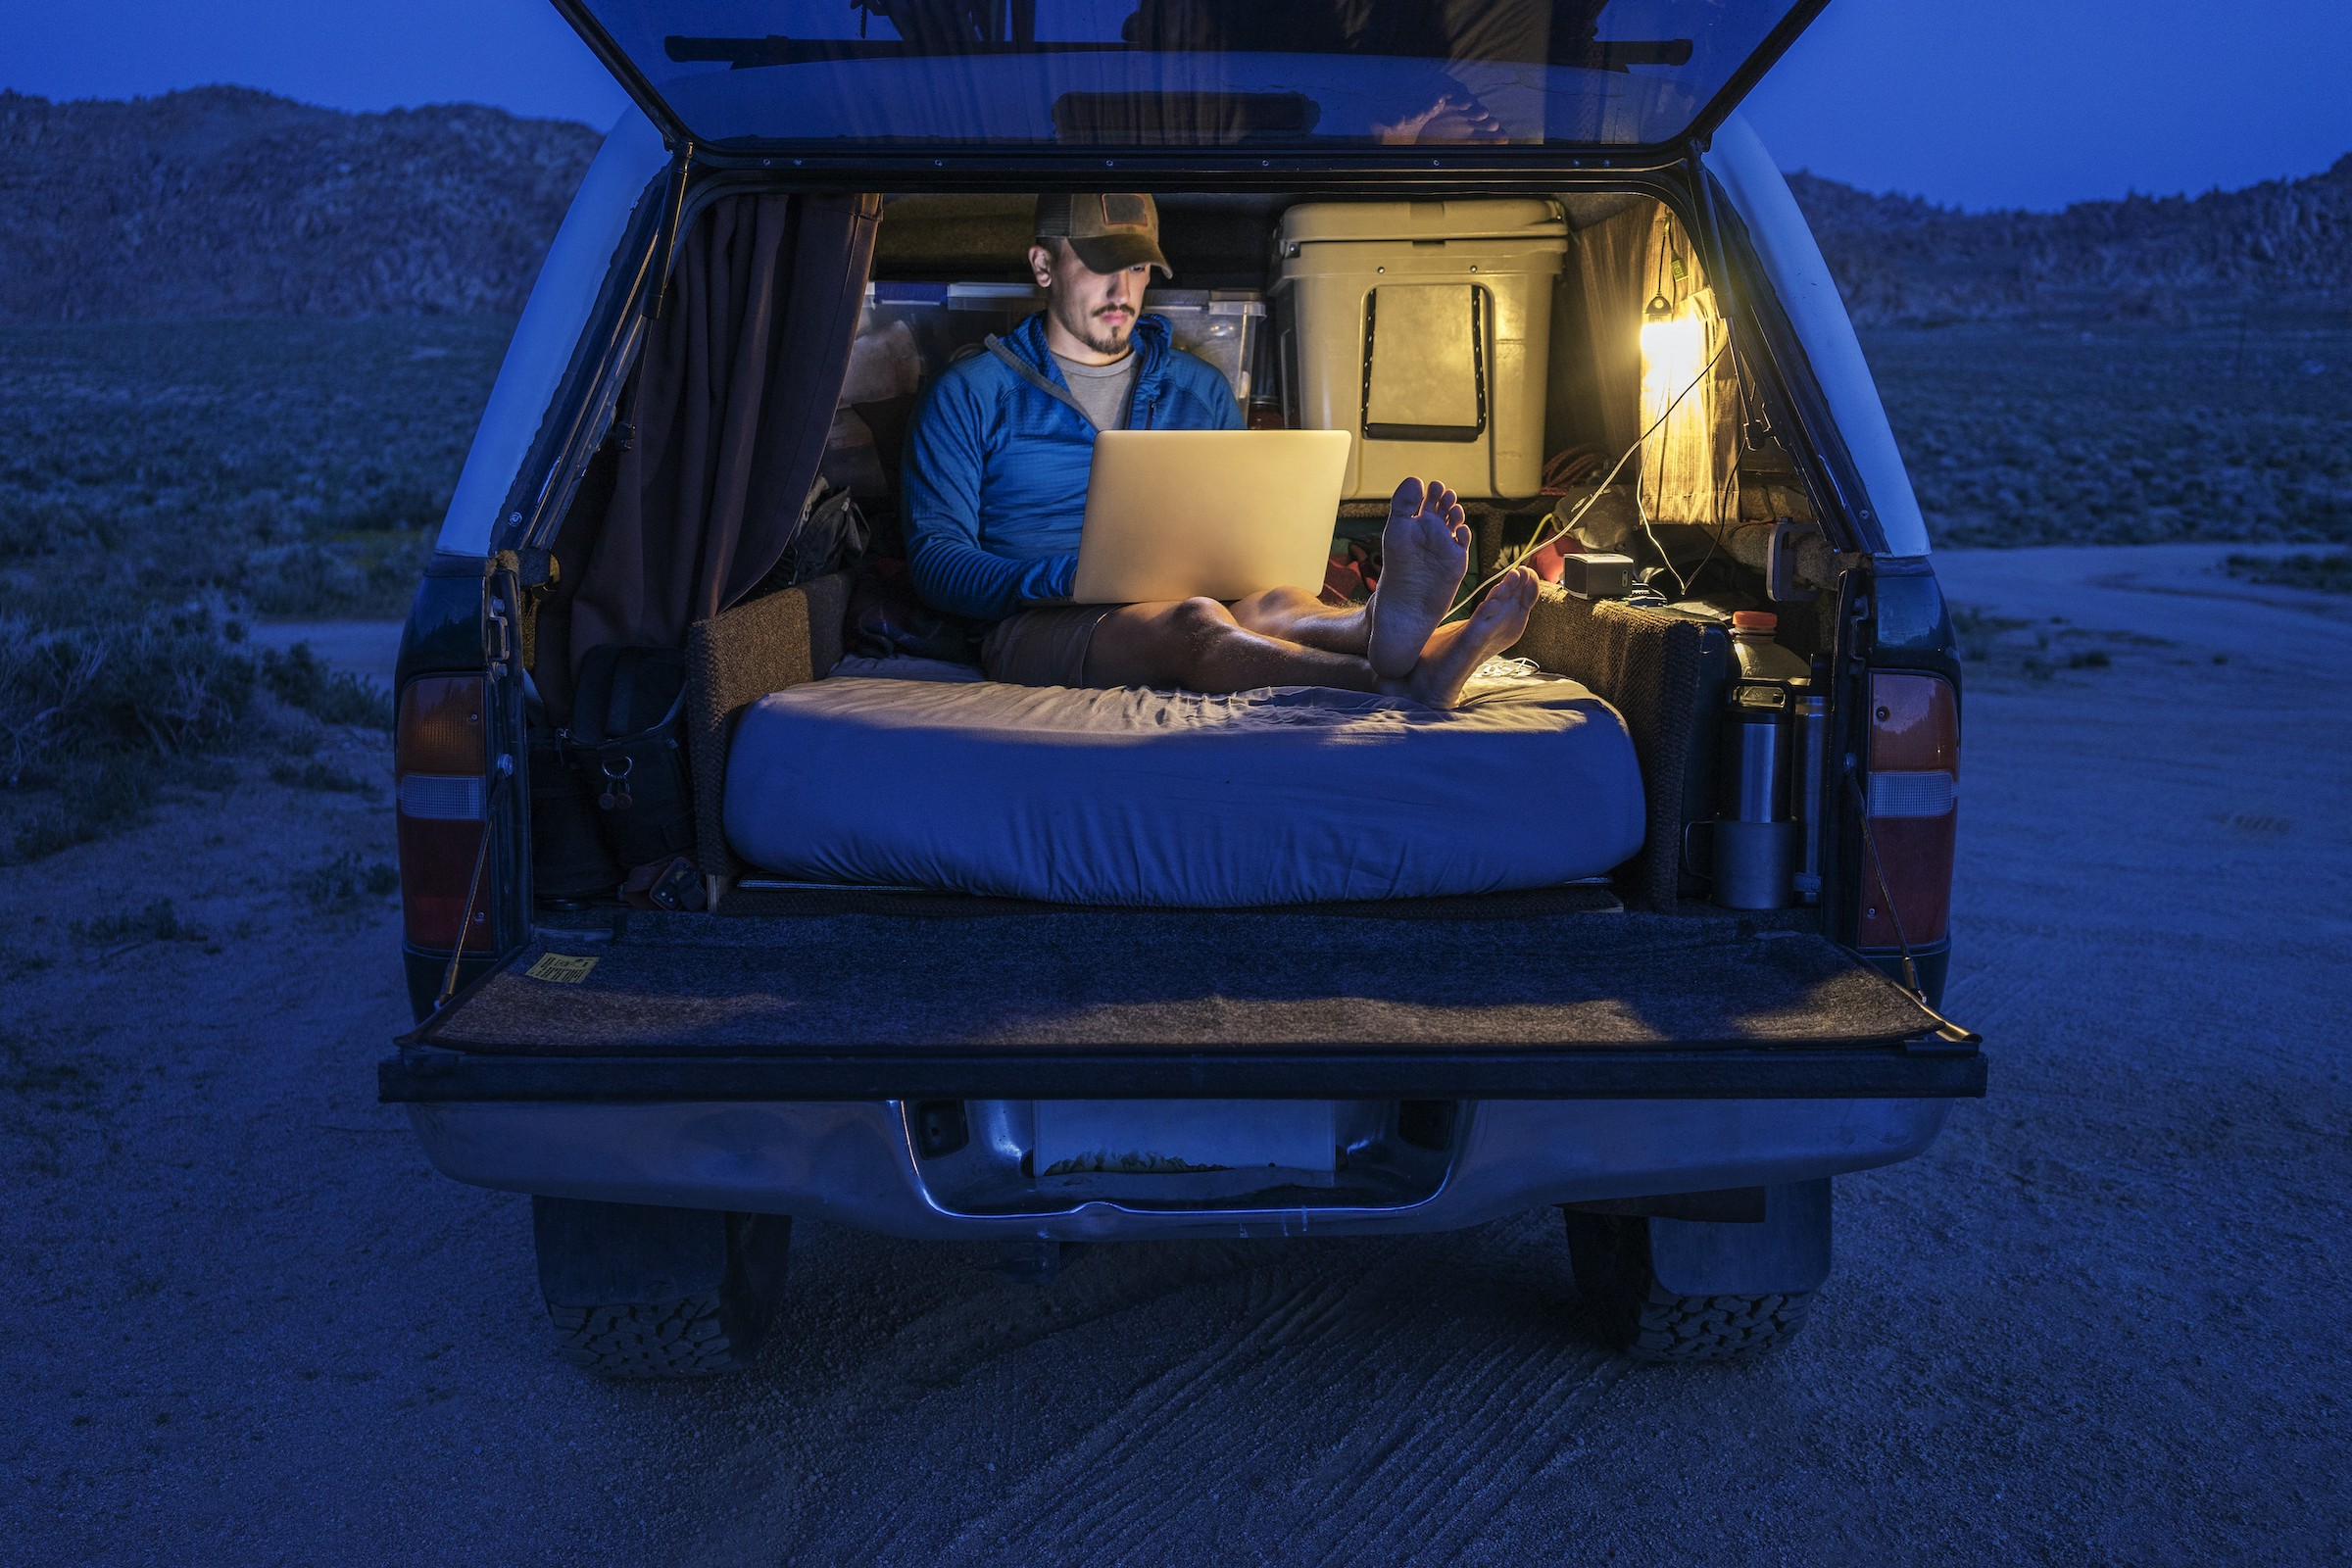 A person working on a laptop in the back of a covered pickup truck at night, sitting on a mattress.